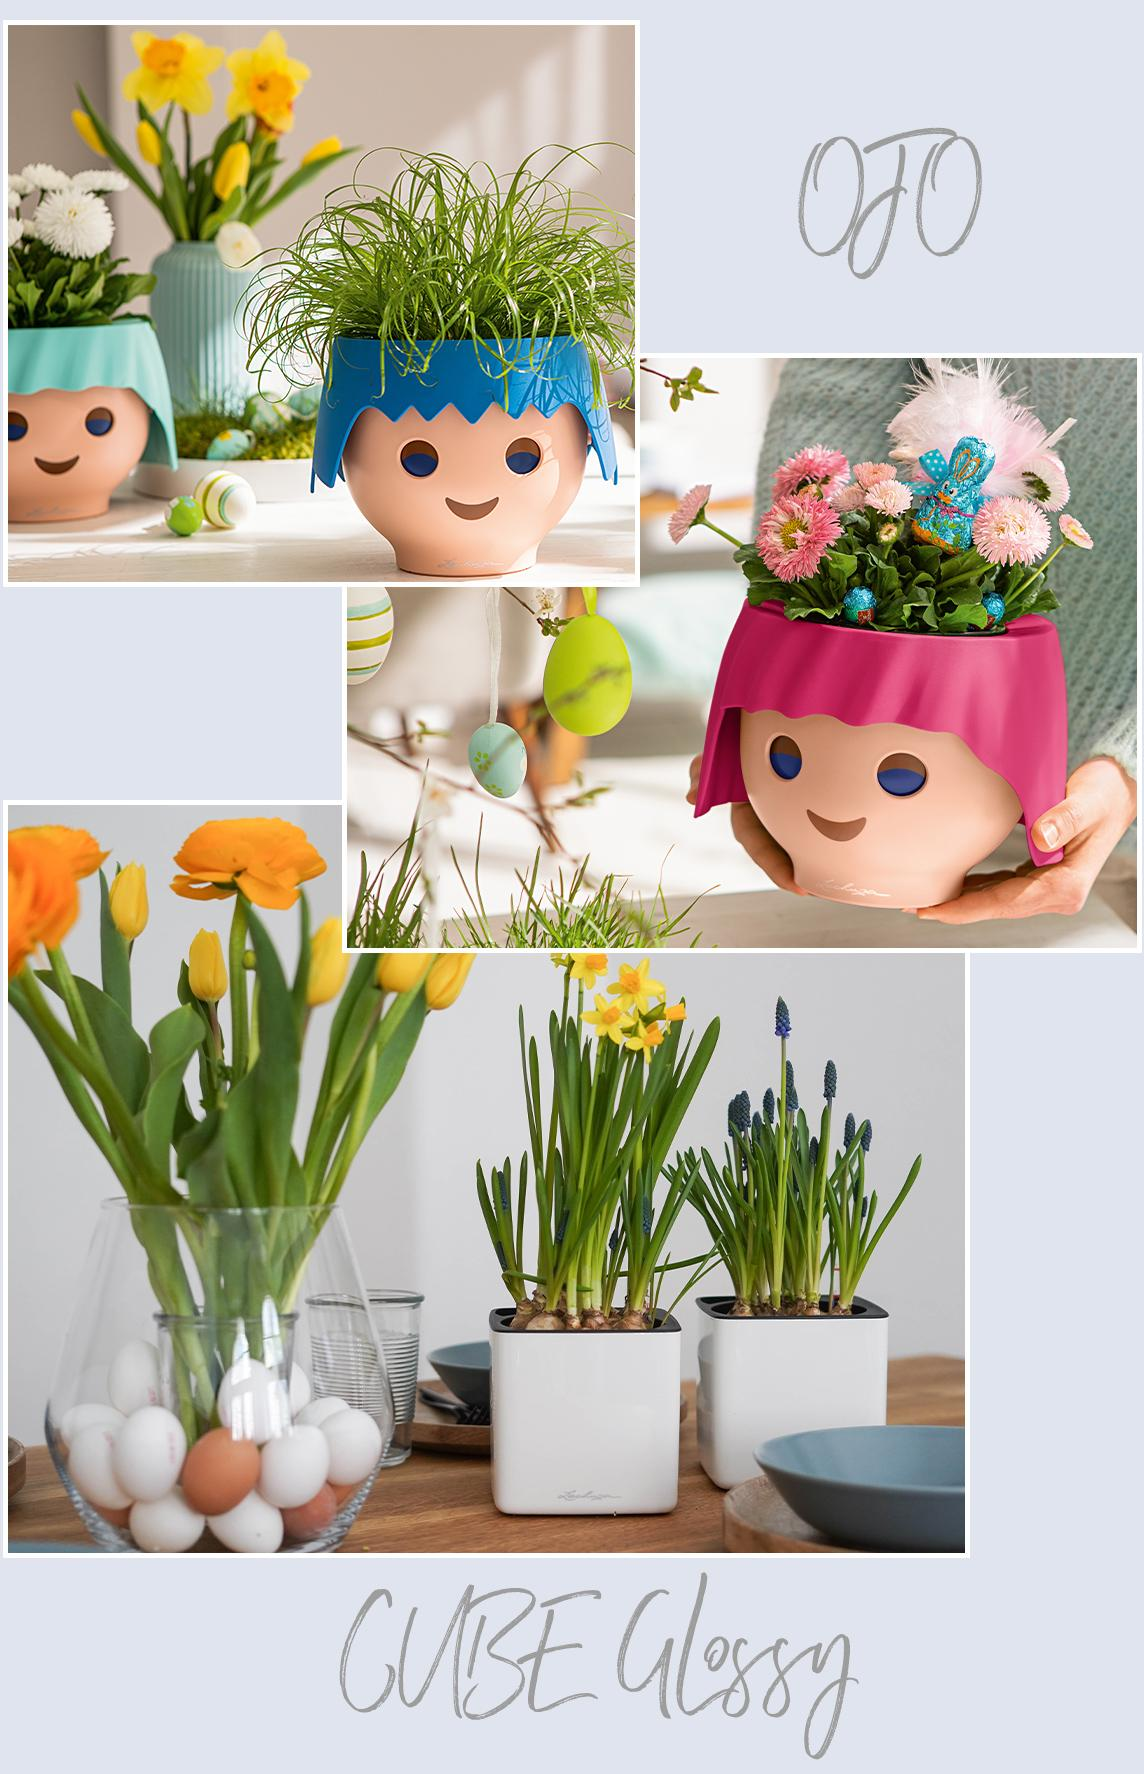 'LECHUZA flower pots in the shape of Playmobil heads